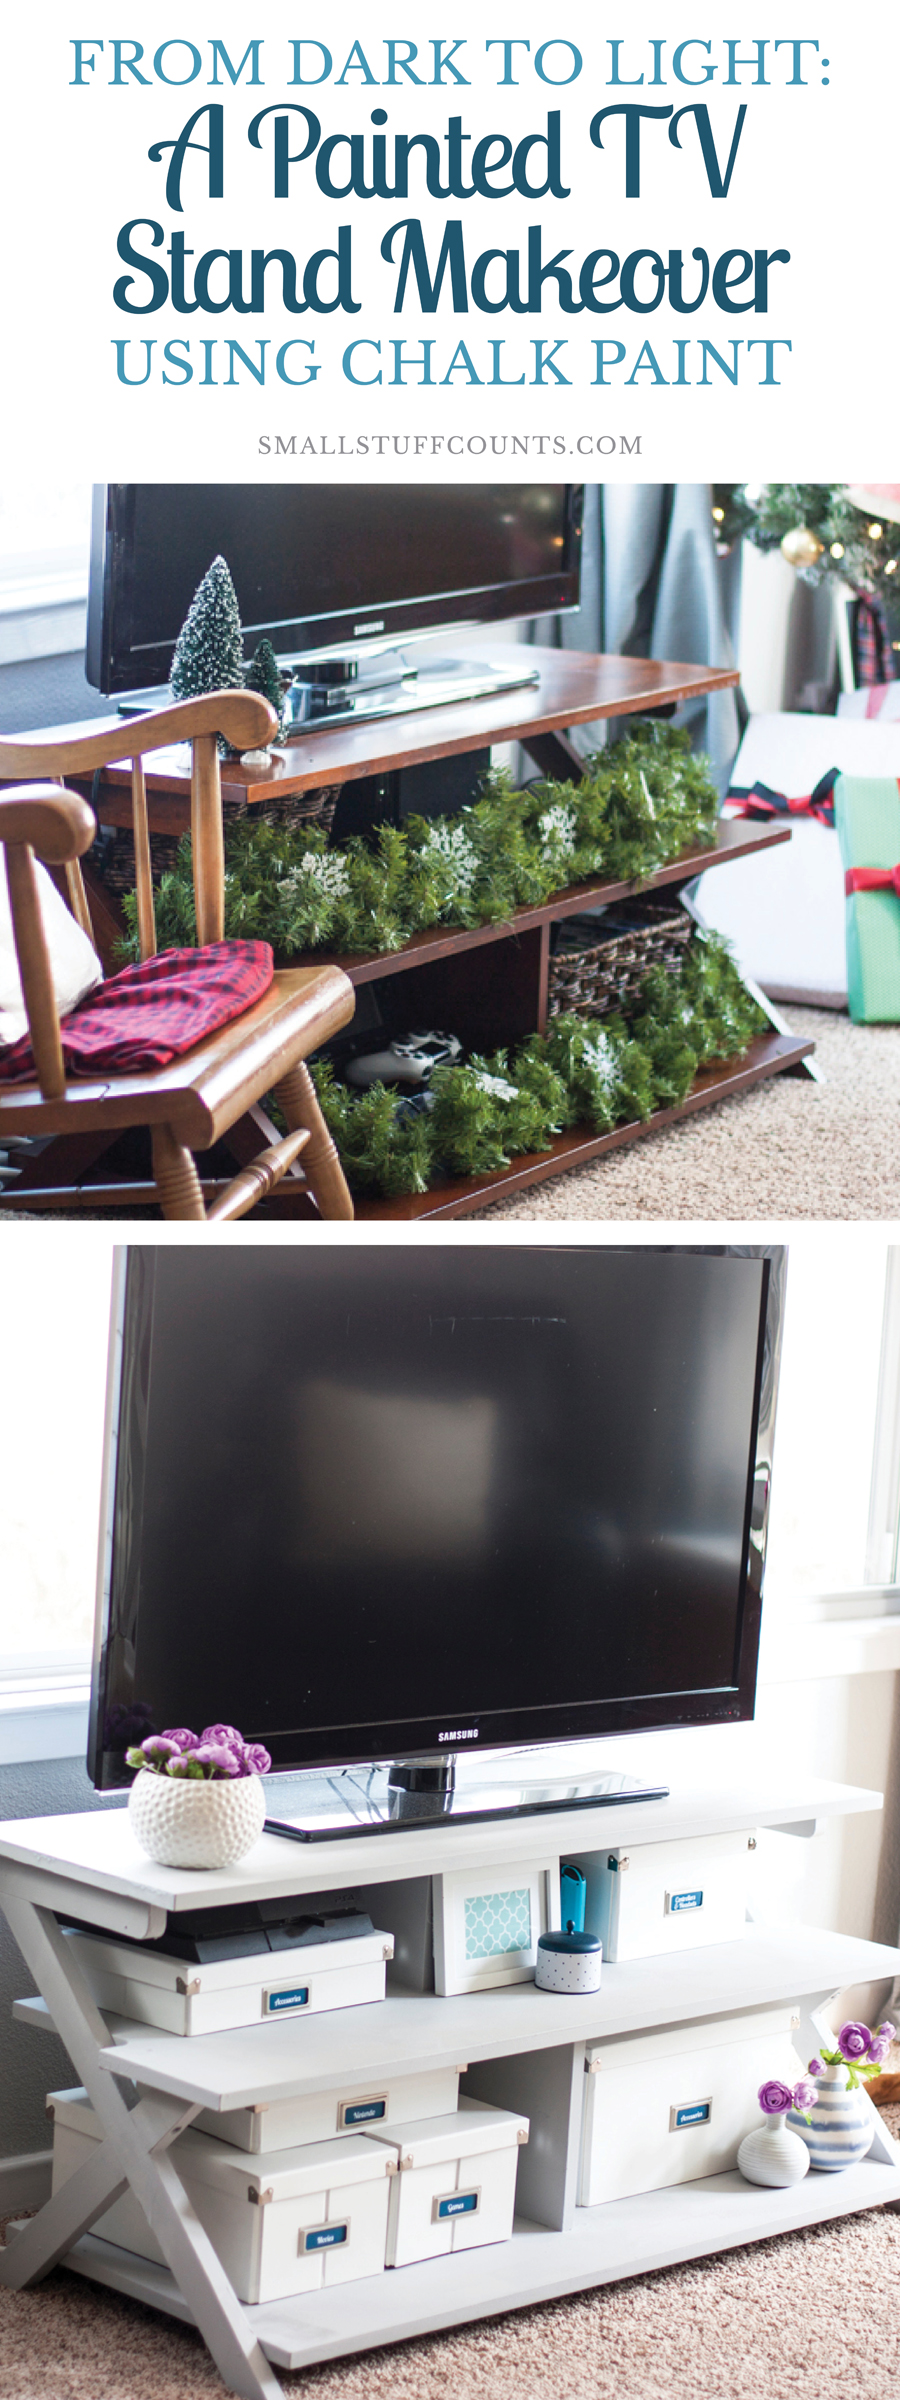 This painted TV stand makeover looks so good! Chalk paint makes it easy to refinish your existing media console or makeover a thrifted piece. This was done with the Rustoleum chalk paint. I always love a great furniture makeover!